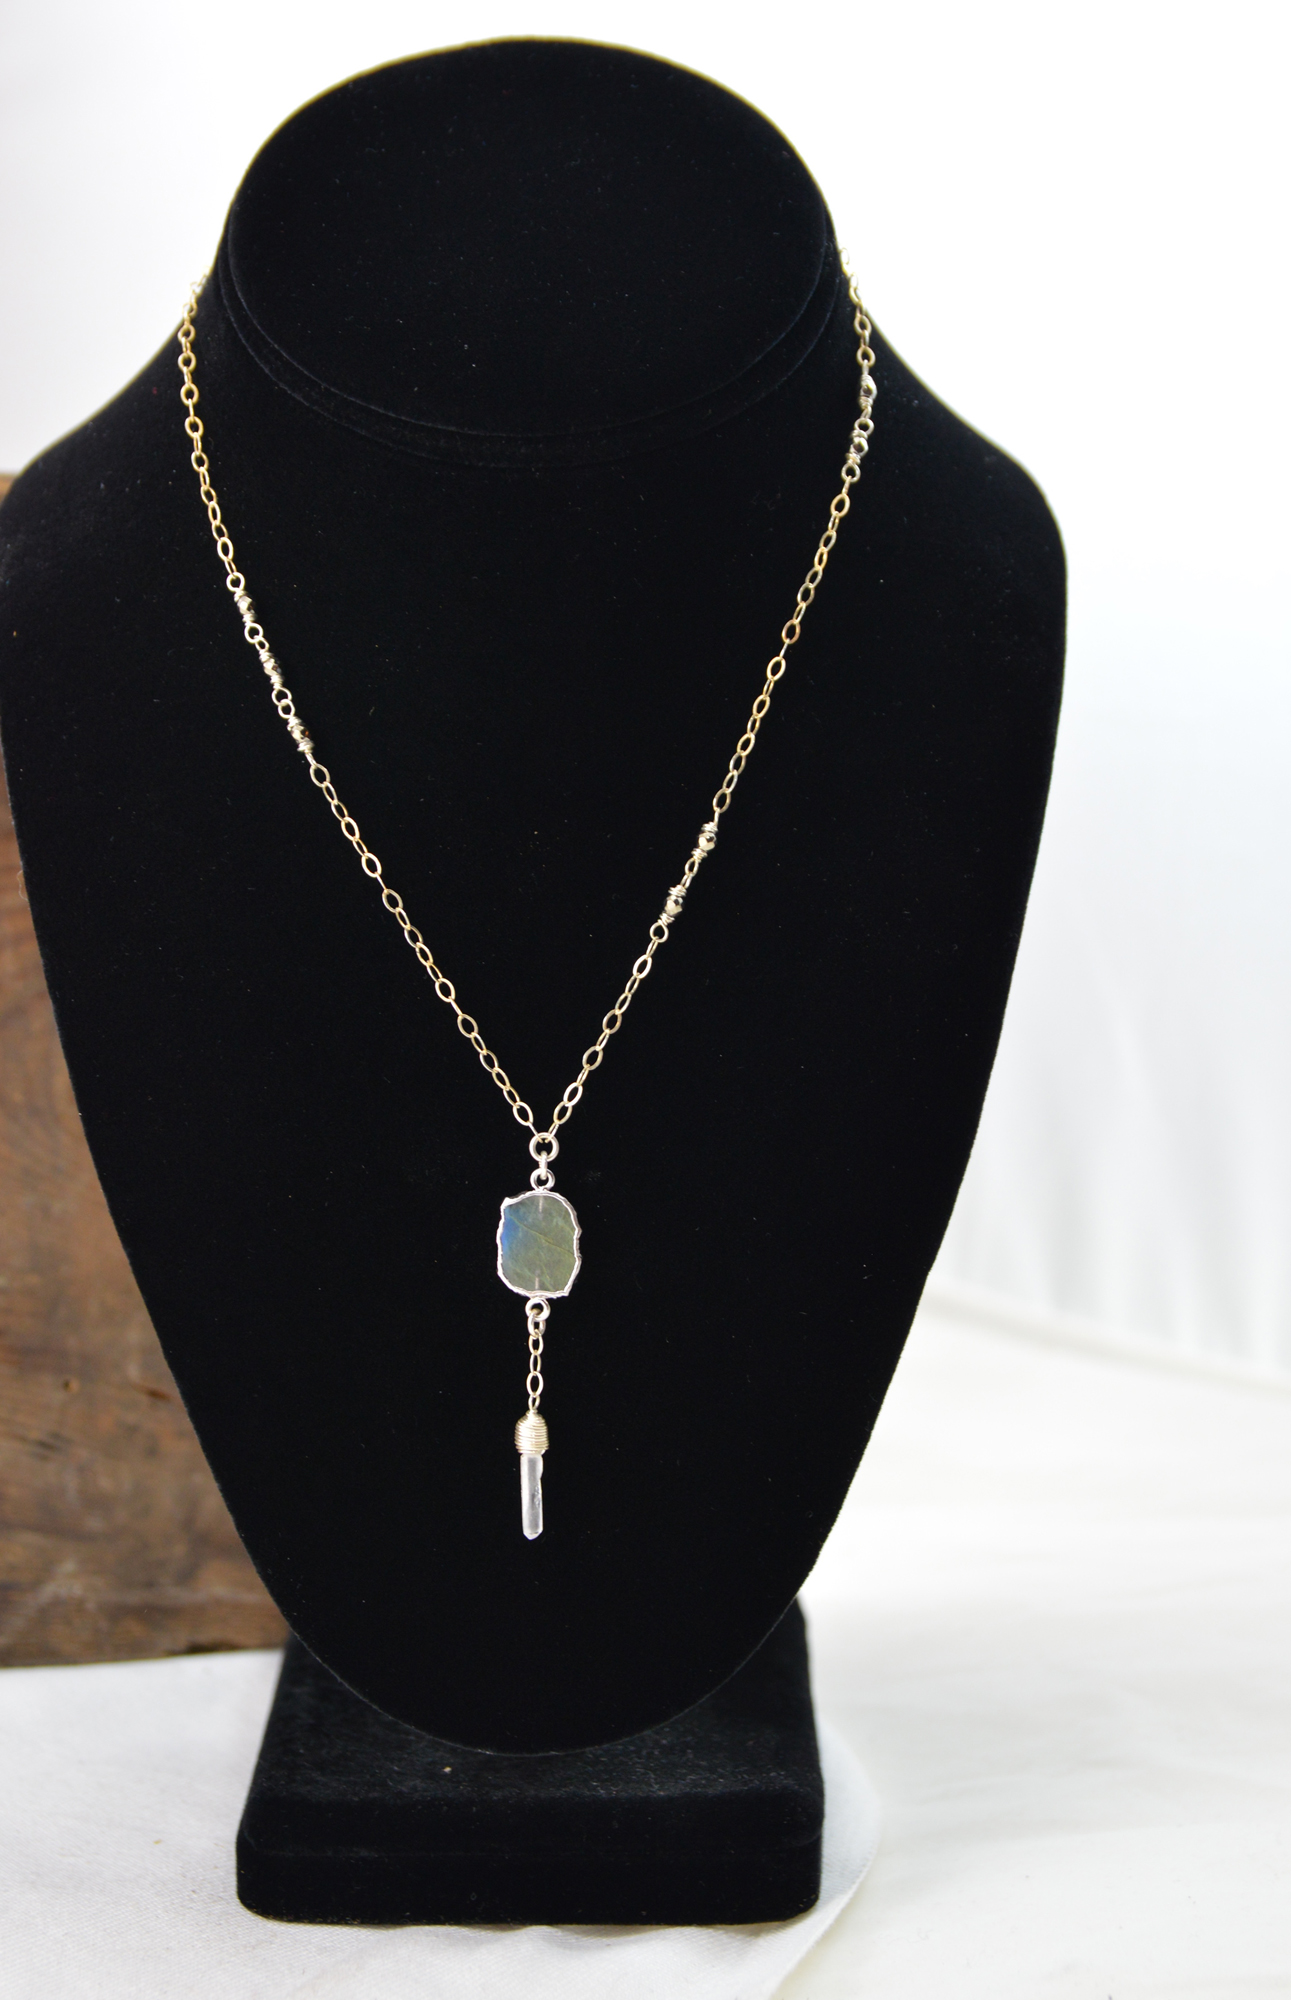 labradorite pyrite quartz necklace made in buffalo ny gift shop